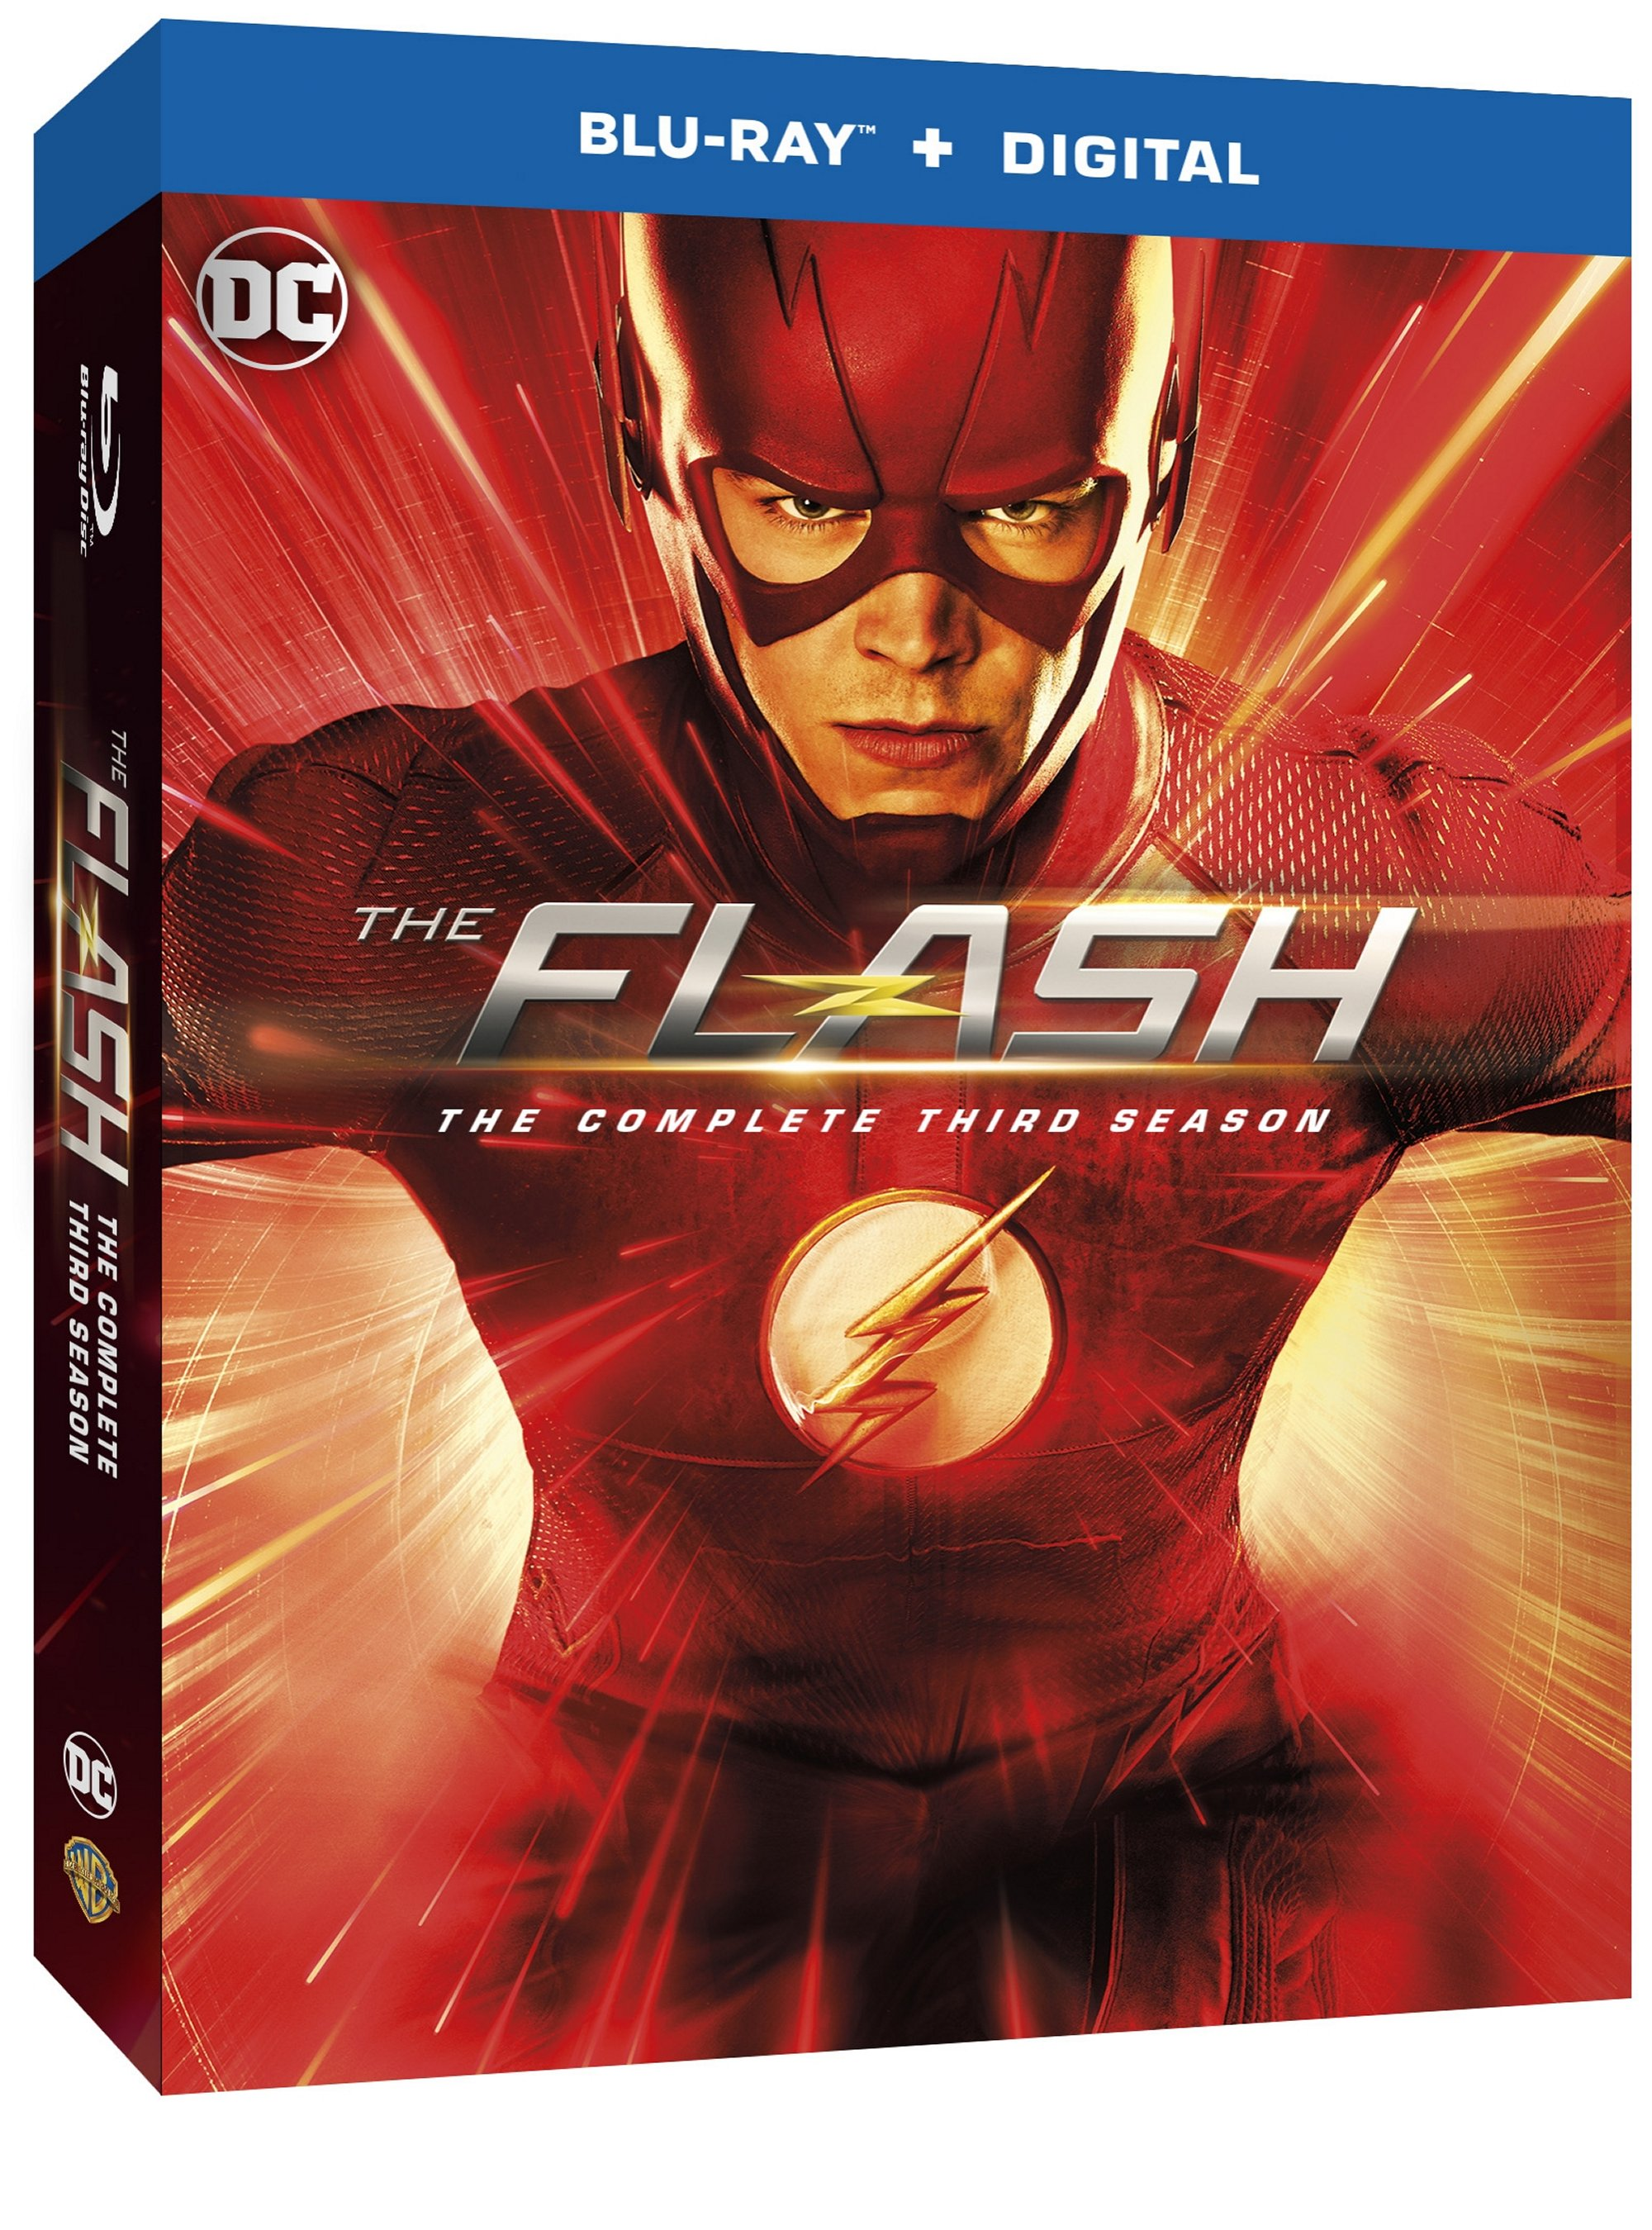 The Flash S3 BD1